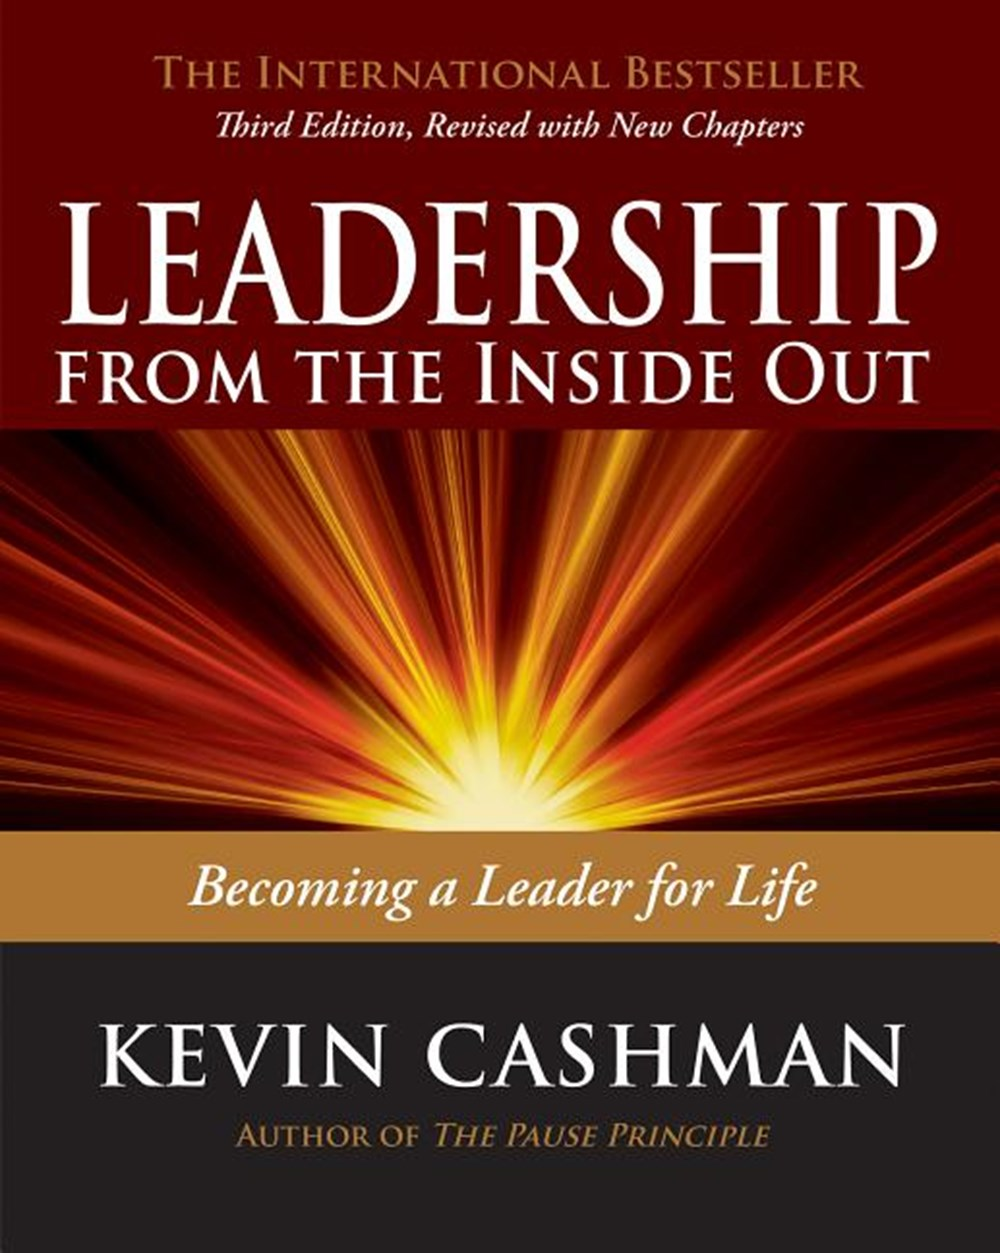 Leadership from the Inside Out Becoming a Leader for Life